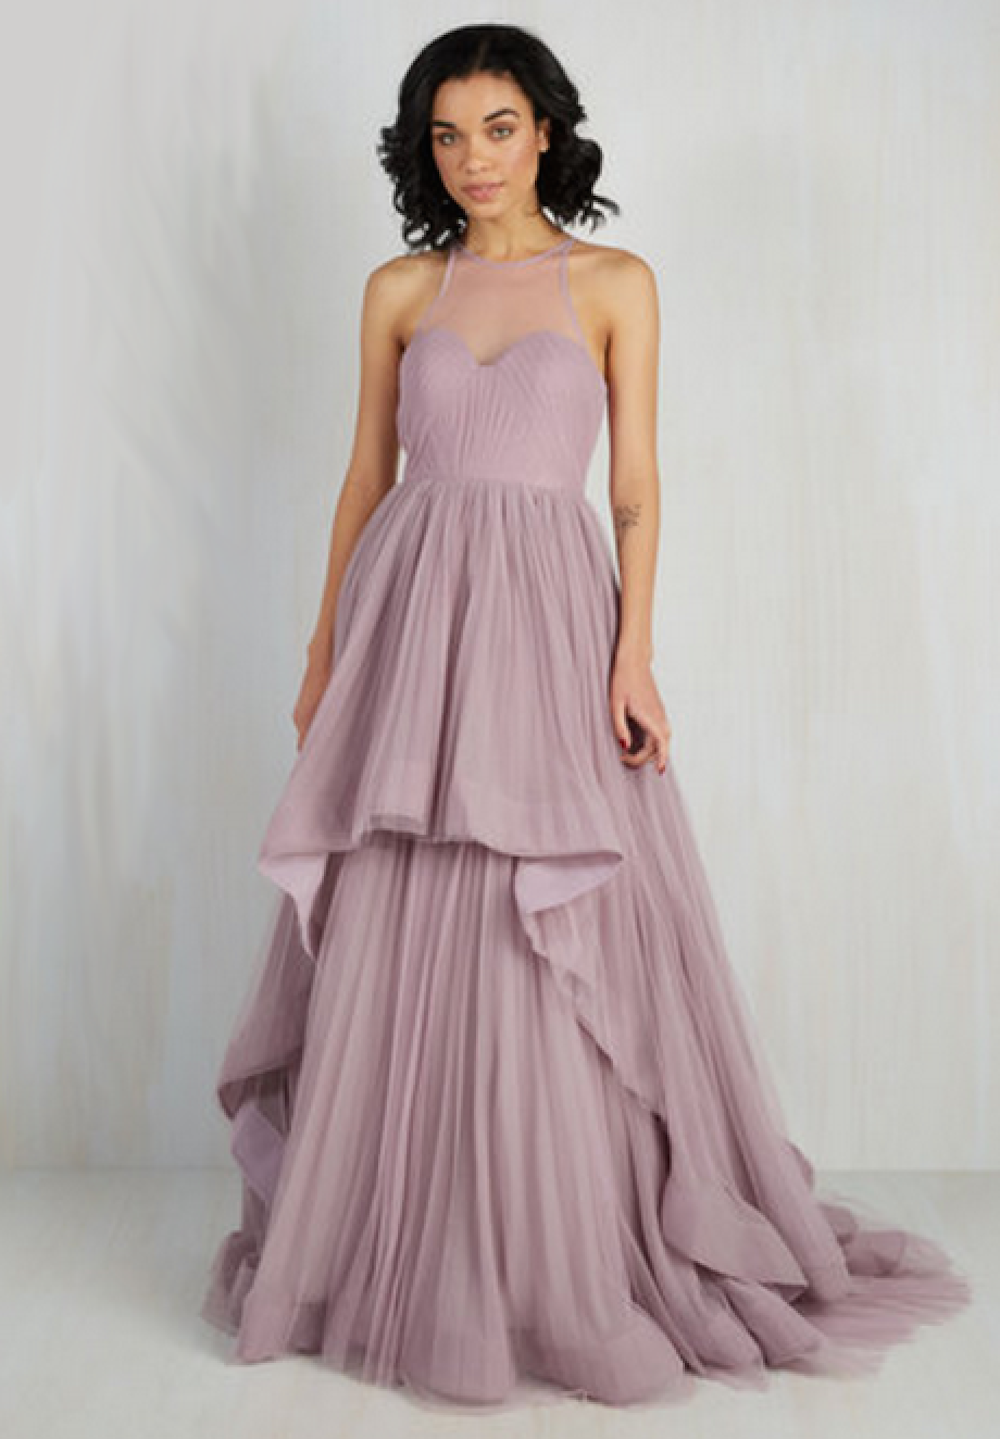 purple prom dresses fit for a prom queen skirts prom dresses